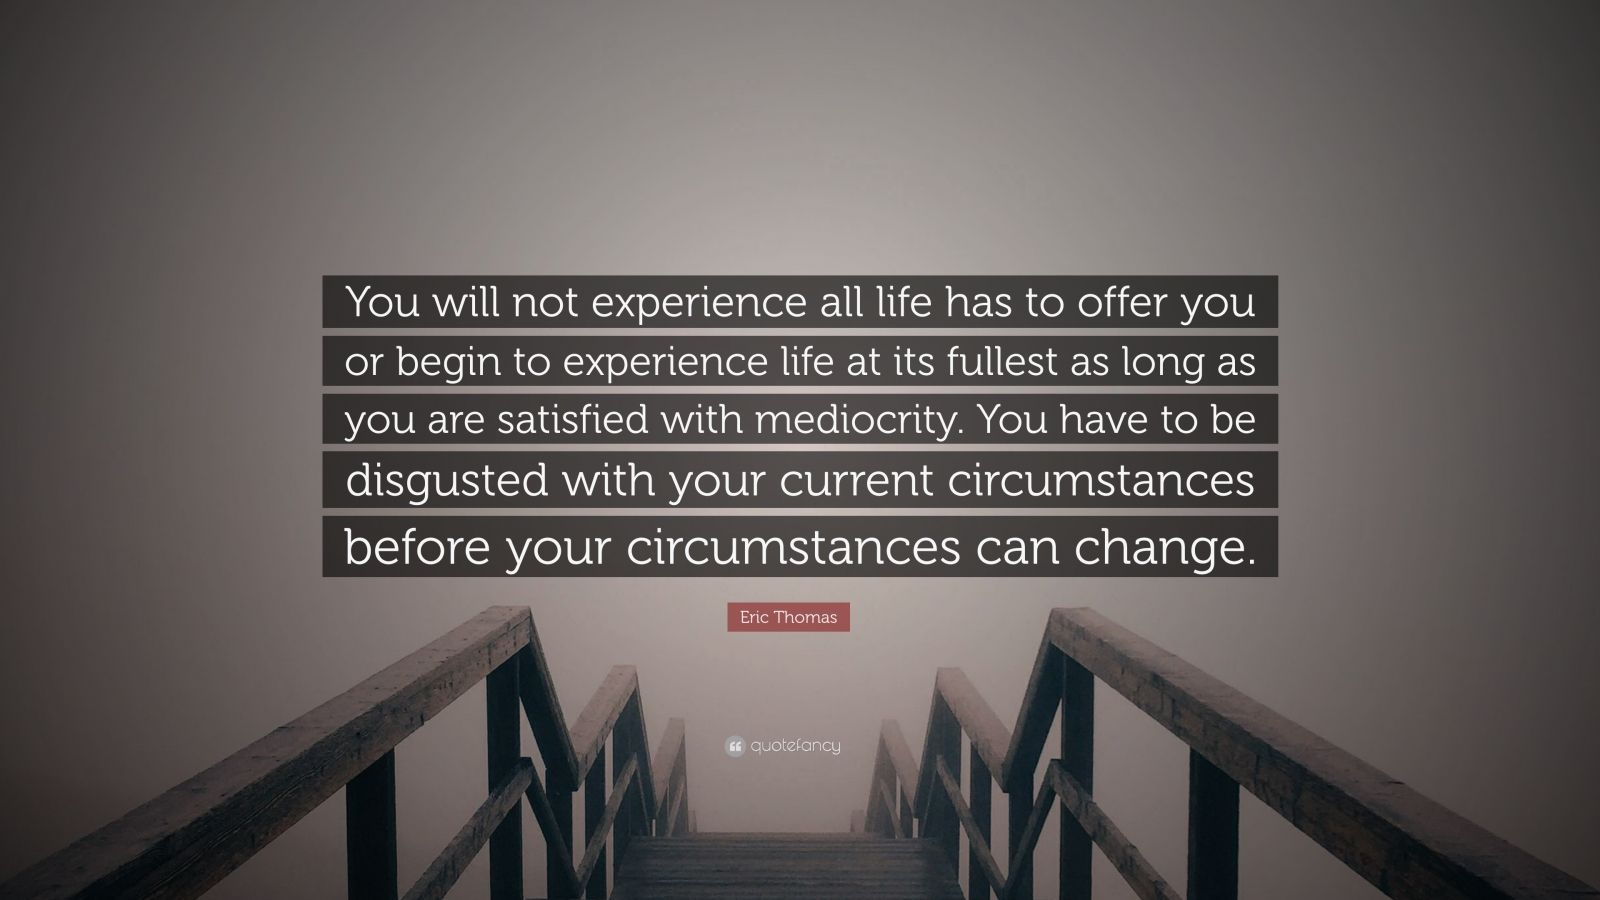 """Eric Thomas Quote: """"You will not experience all life has to offer you or begin to experience life at its fullest as long as you are satisfied with mediocrity. You have to be disgusted with your current circumstances before your circumstances can change."""""""